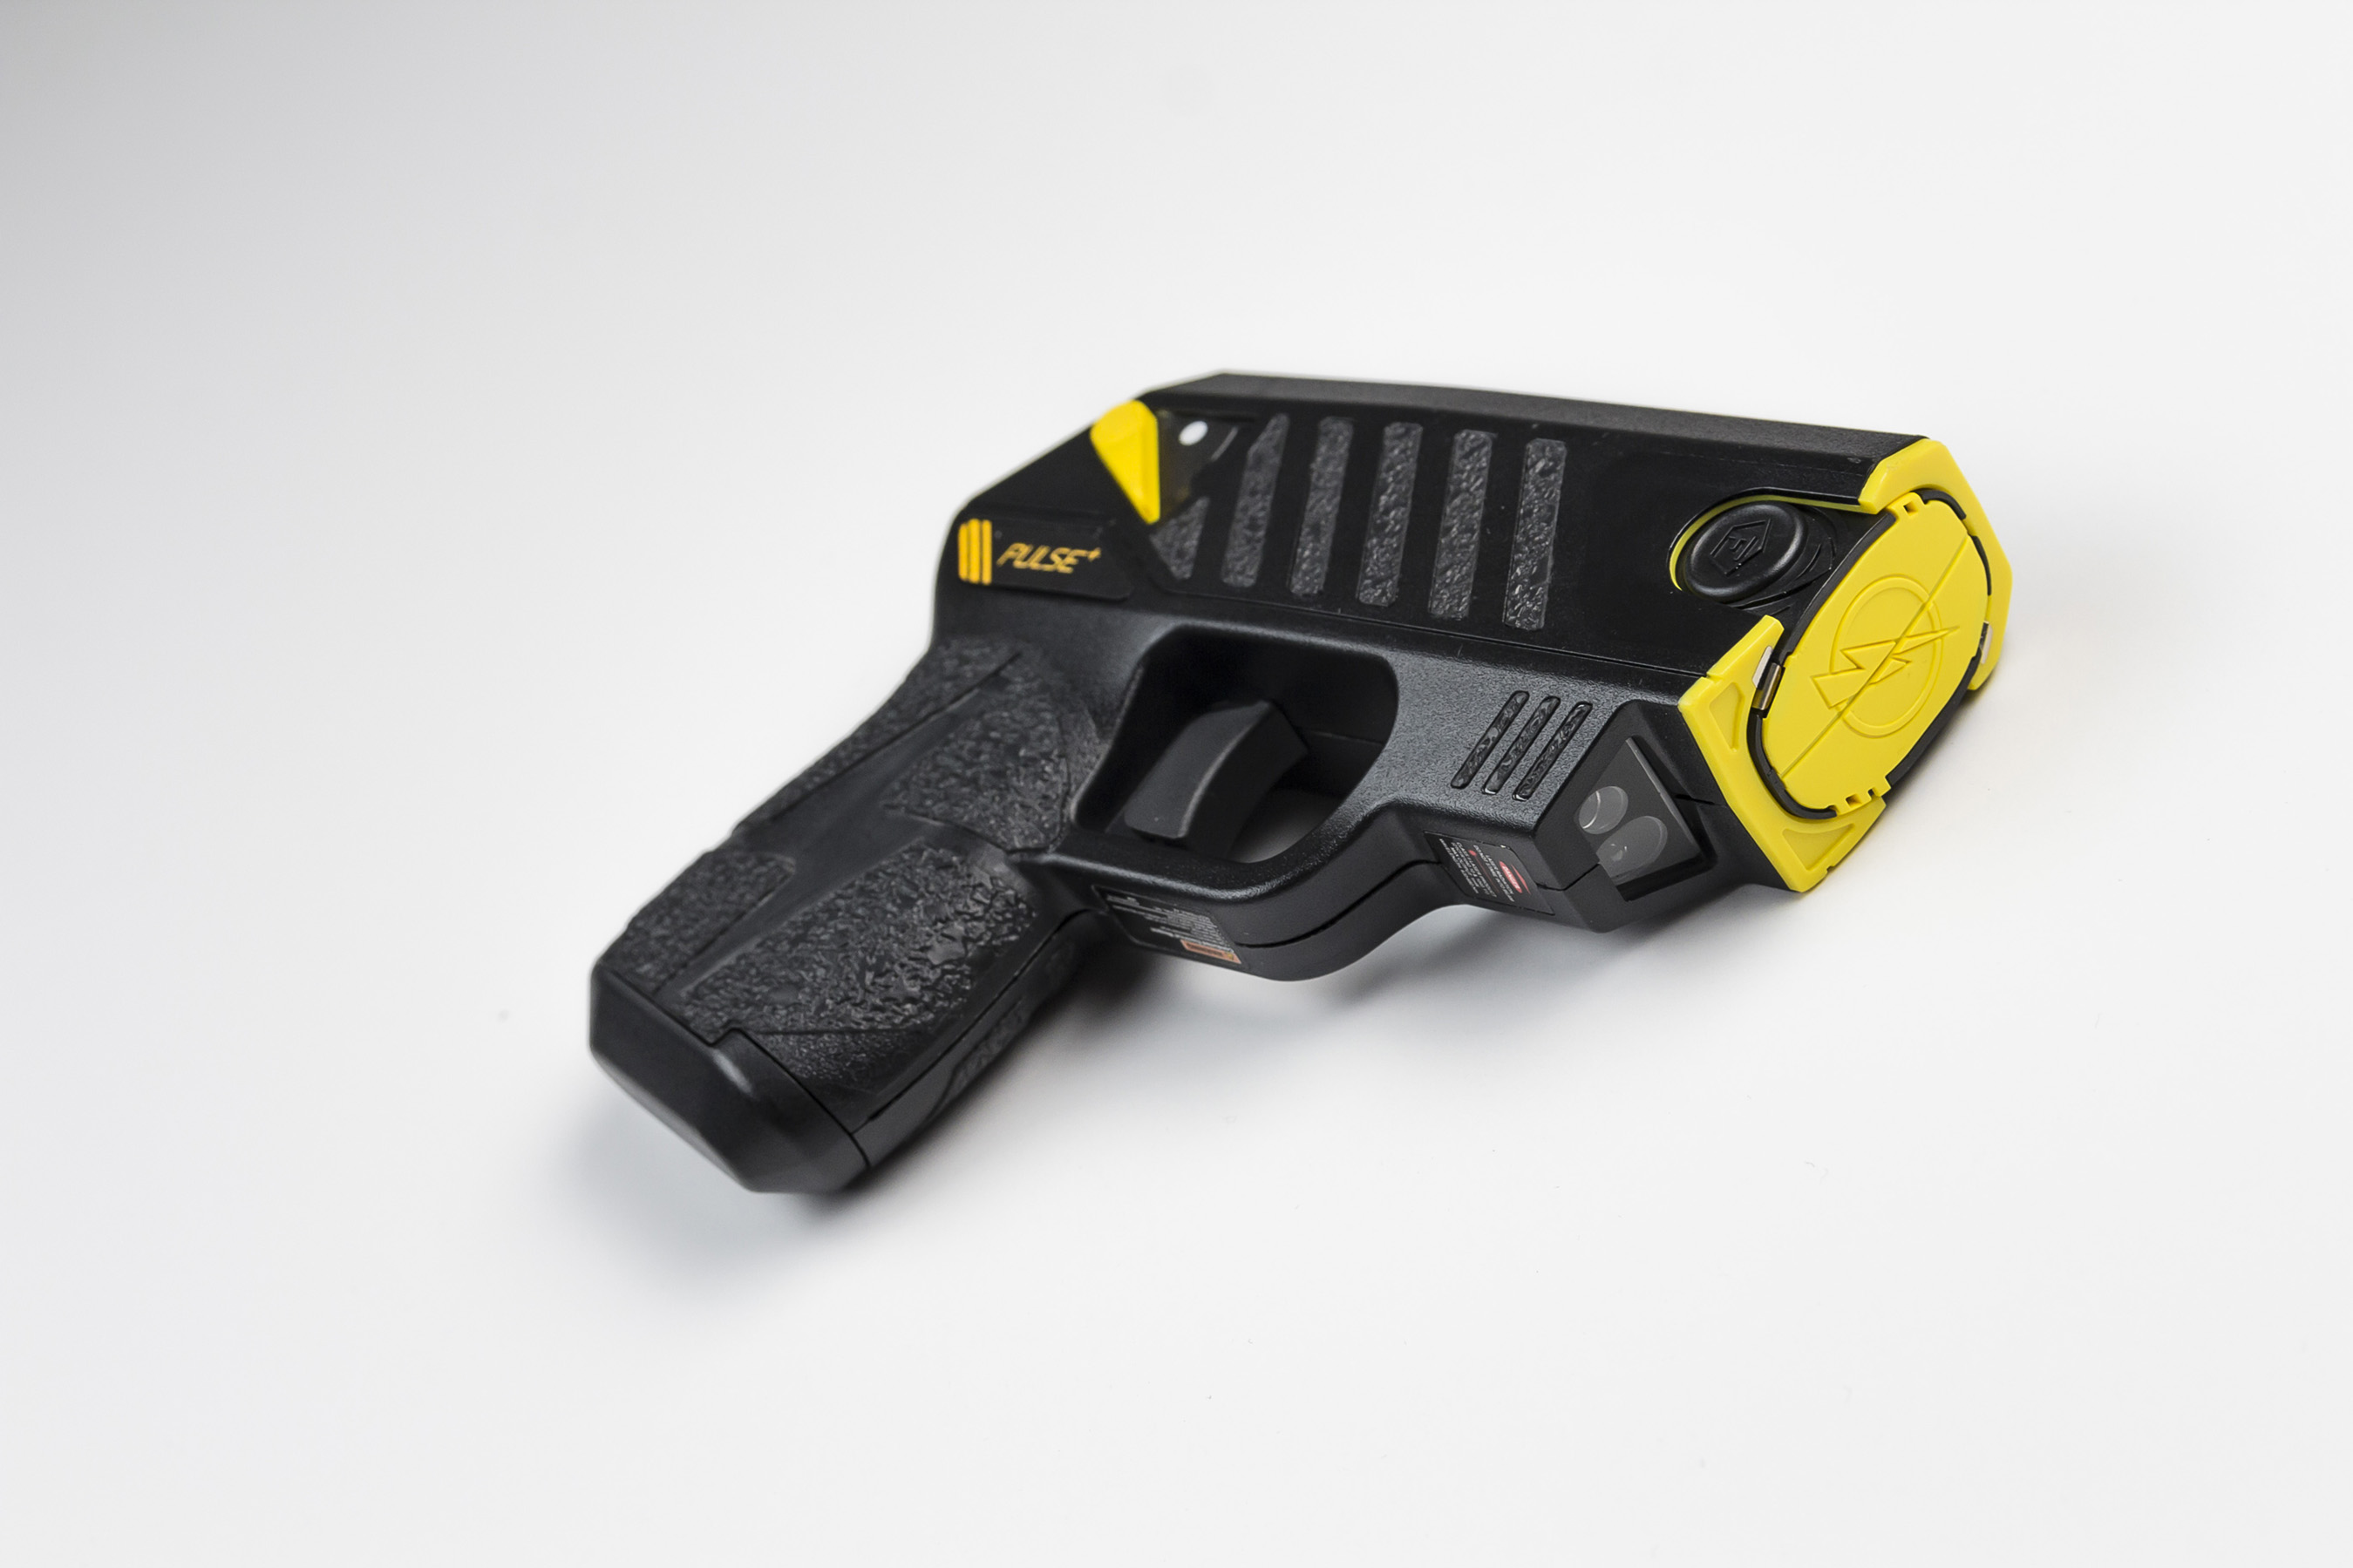 TASER Pulse+ uses similar muscular override technology as their law enforcement products.